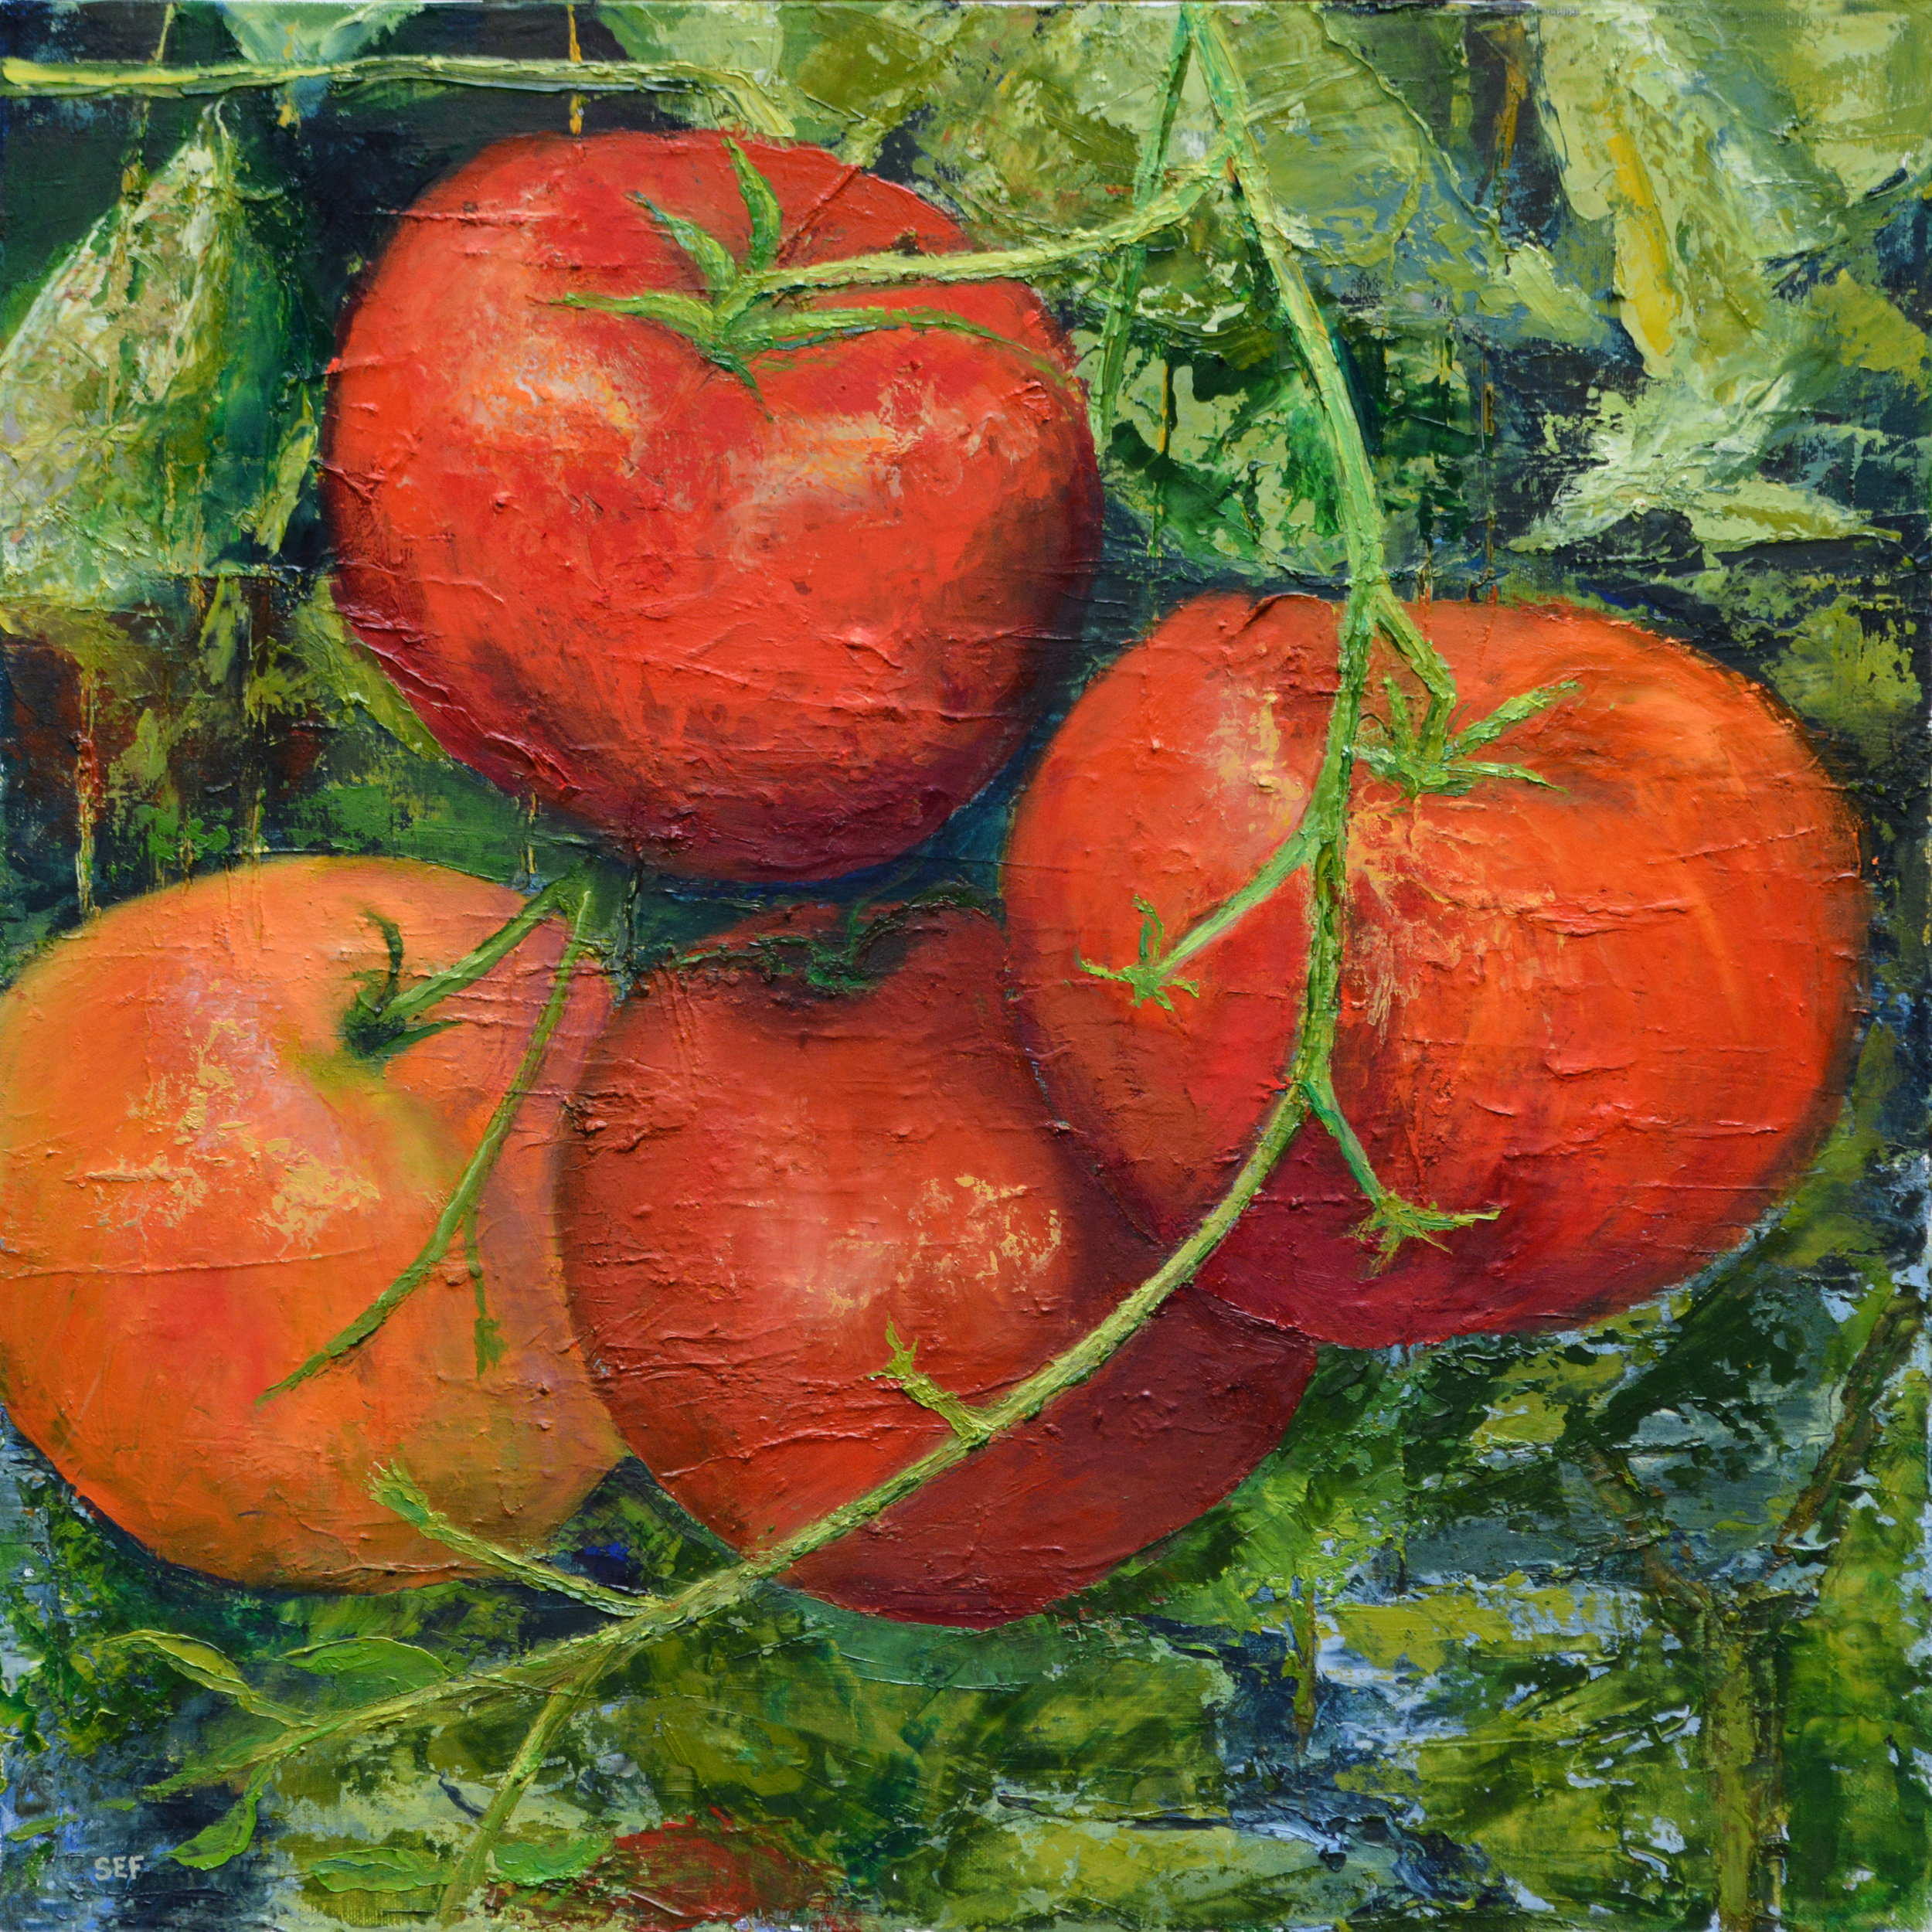 RIPE TOMATOES  OIL ON CANVAS  24 X 24  $1,200.